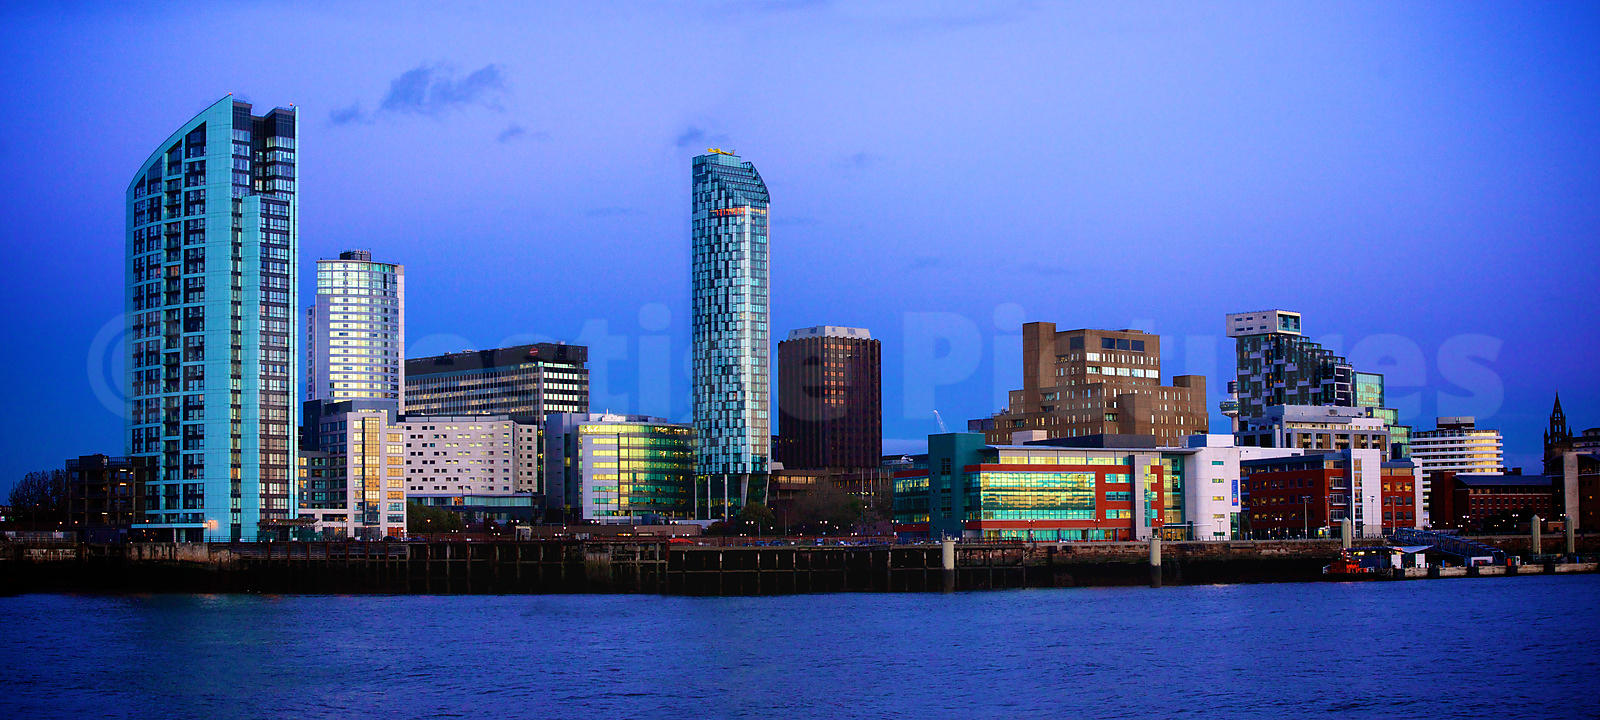 The Setting Sun reflecting on Buildings along the Liverpool Waterfront at Dusk Viewed from across The Mersey